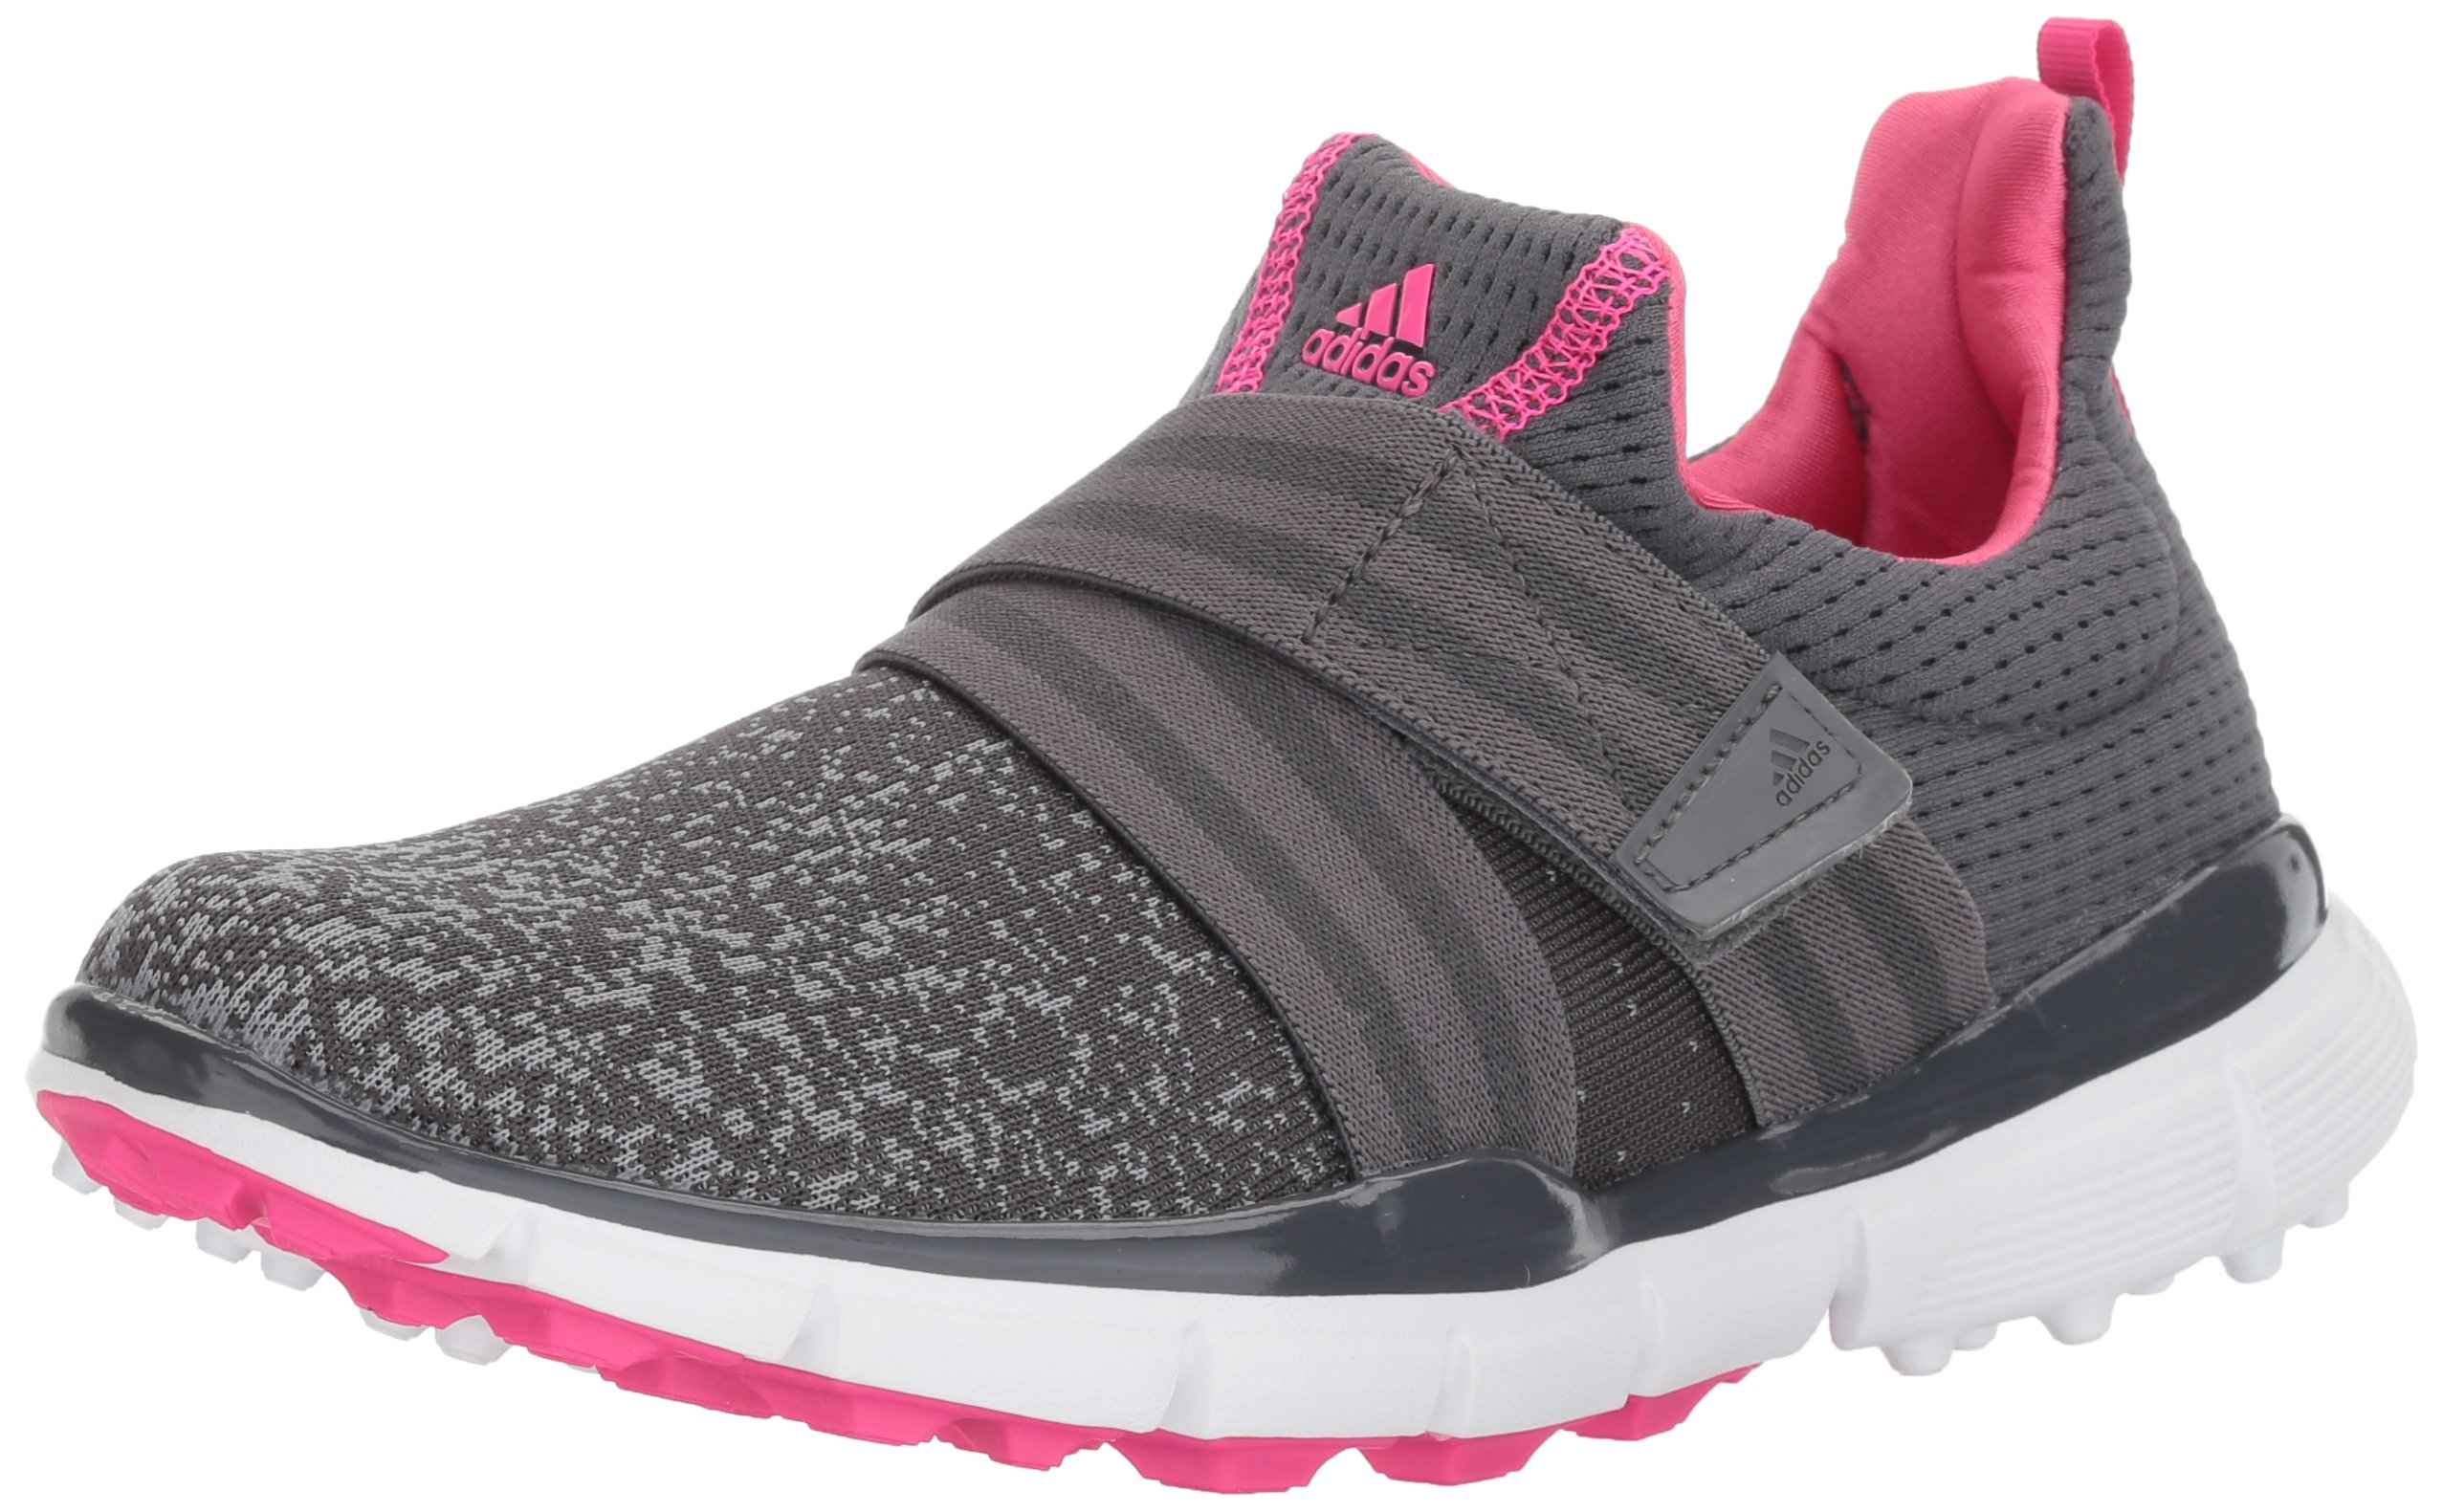 adidas Women's Climacool Knit Golf Shoe, Grey/Shock Pink, 7.5 M US by adidas